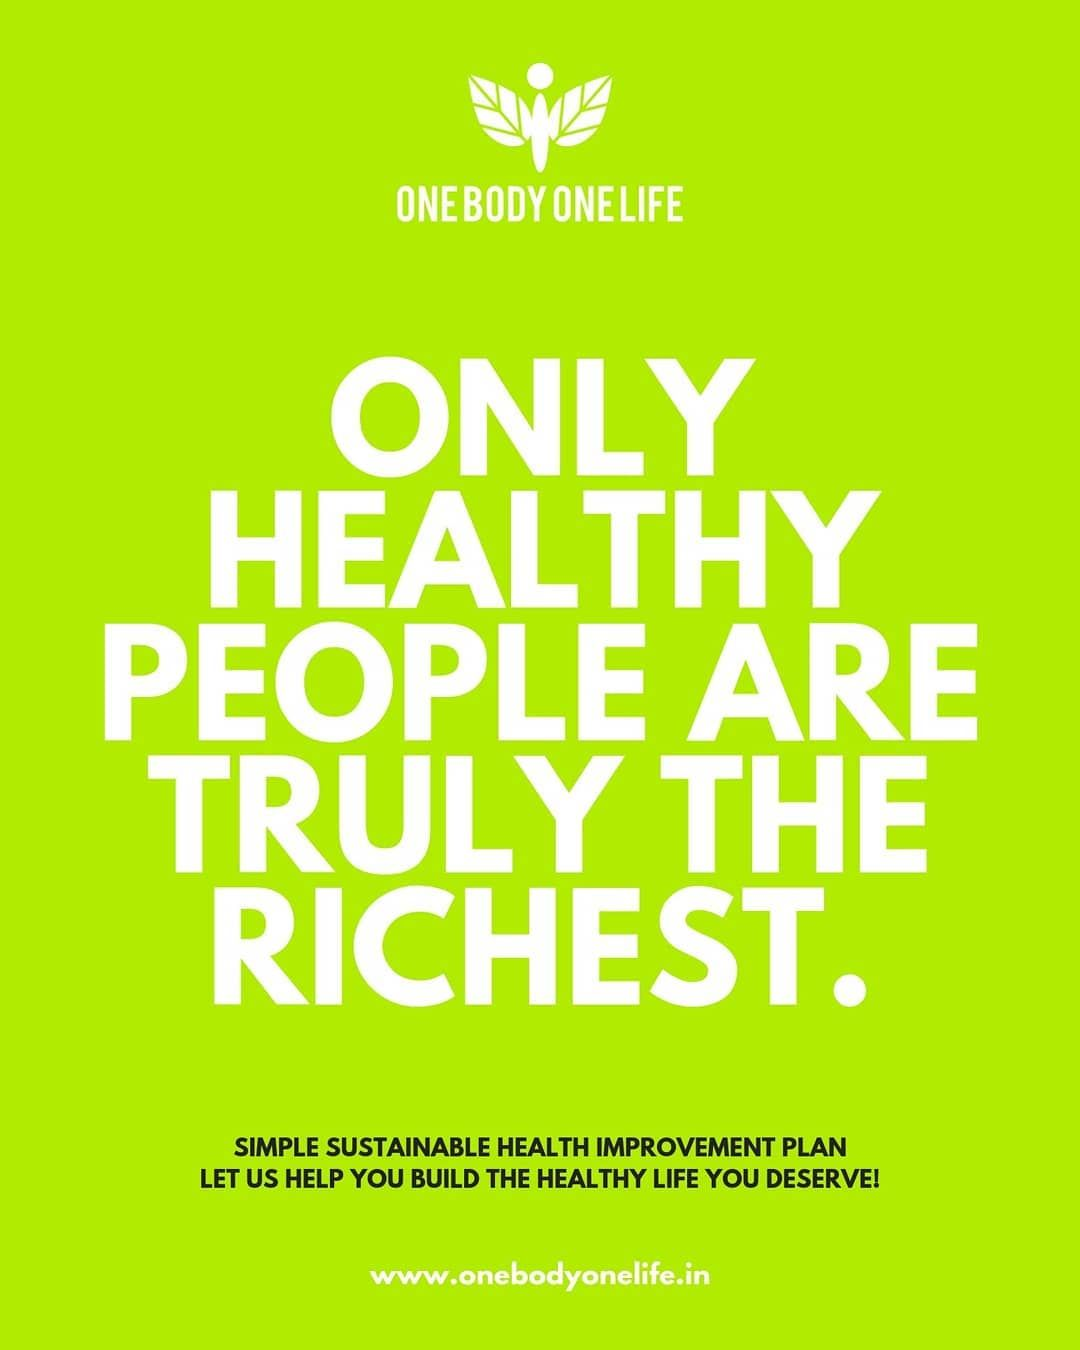 Only healthy people are truly the richest  SIMPLE SUSTAINABLE HEALTH IMPROVEMENT PLAN LET US HELP YO...